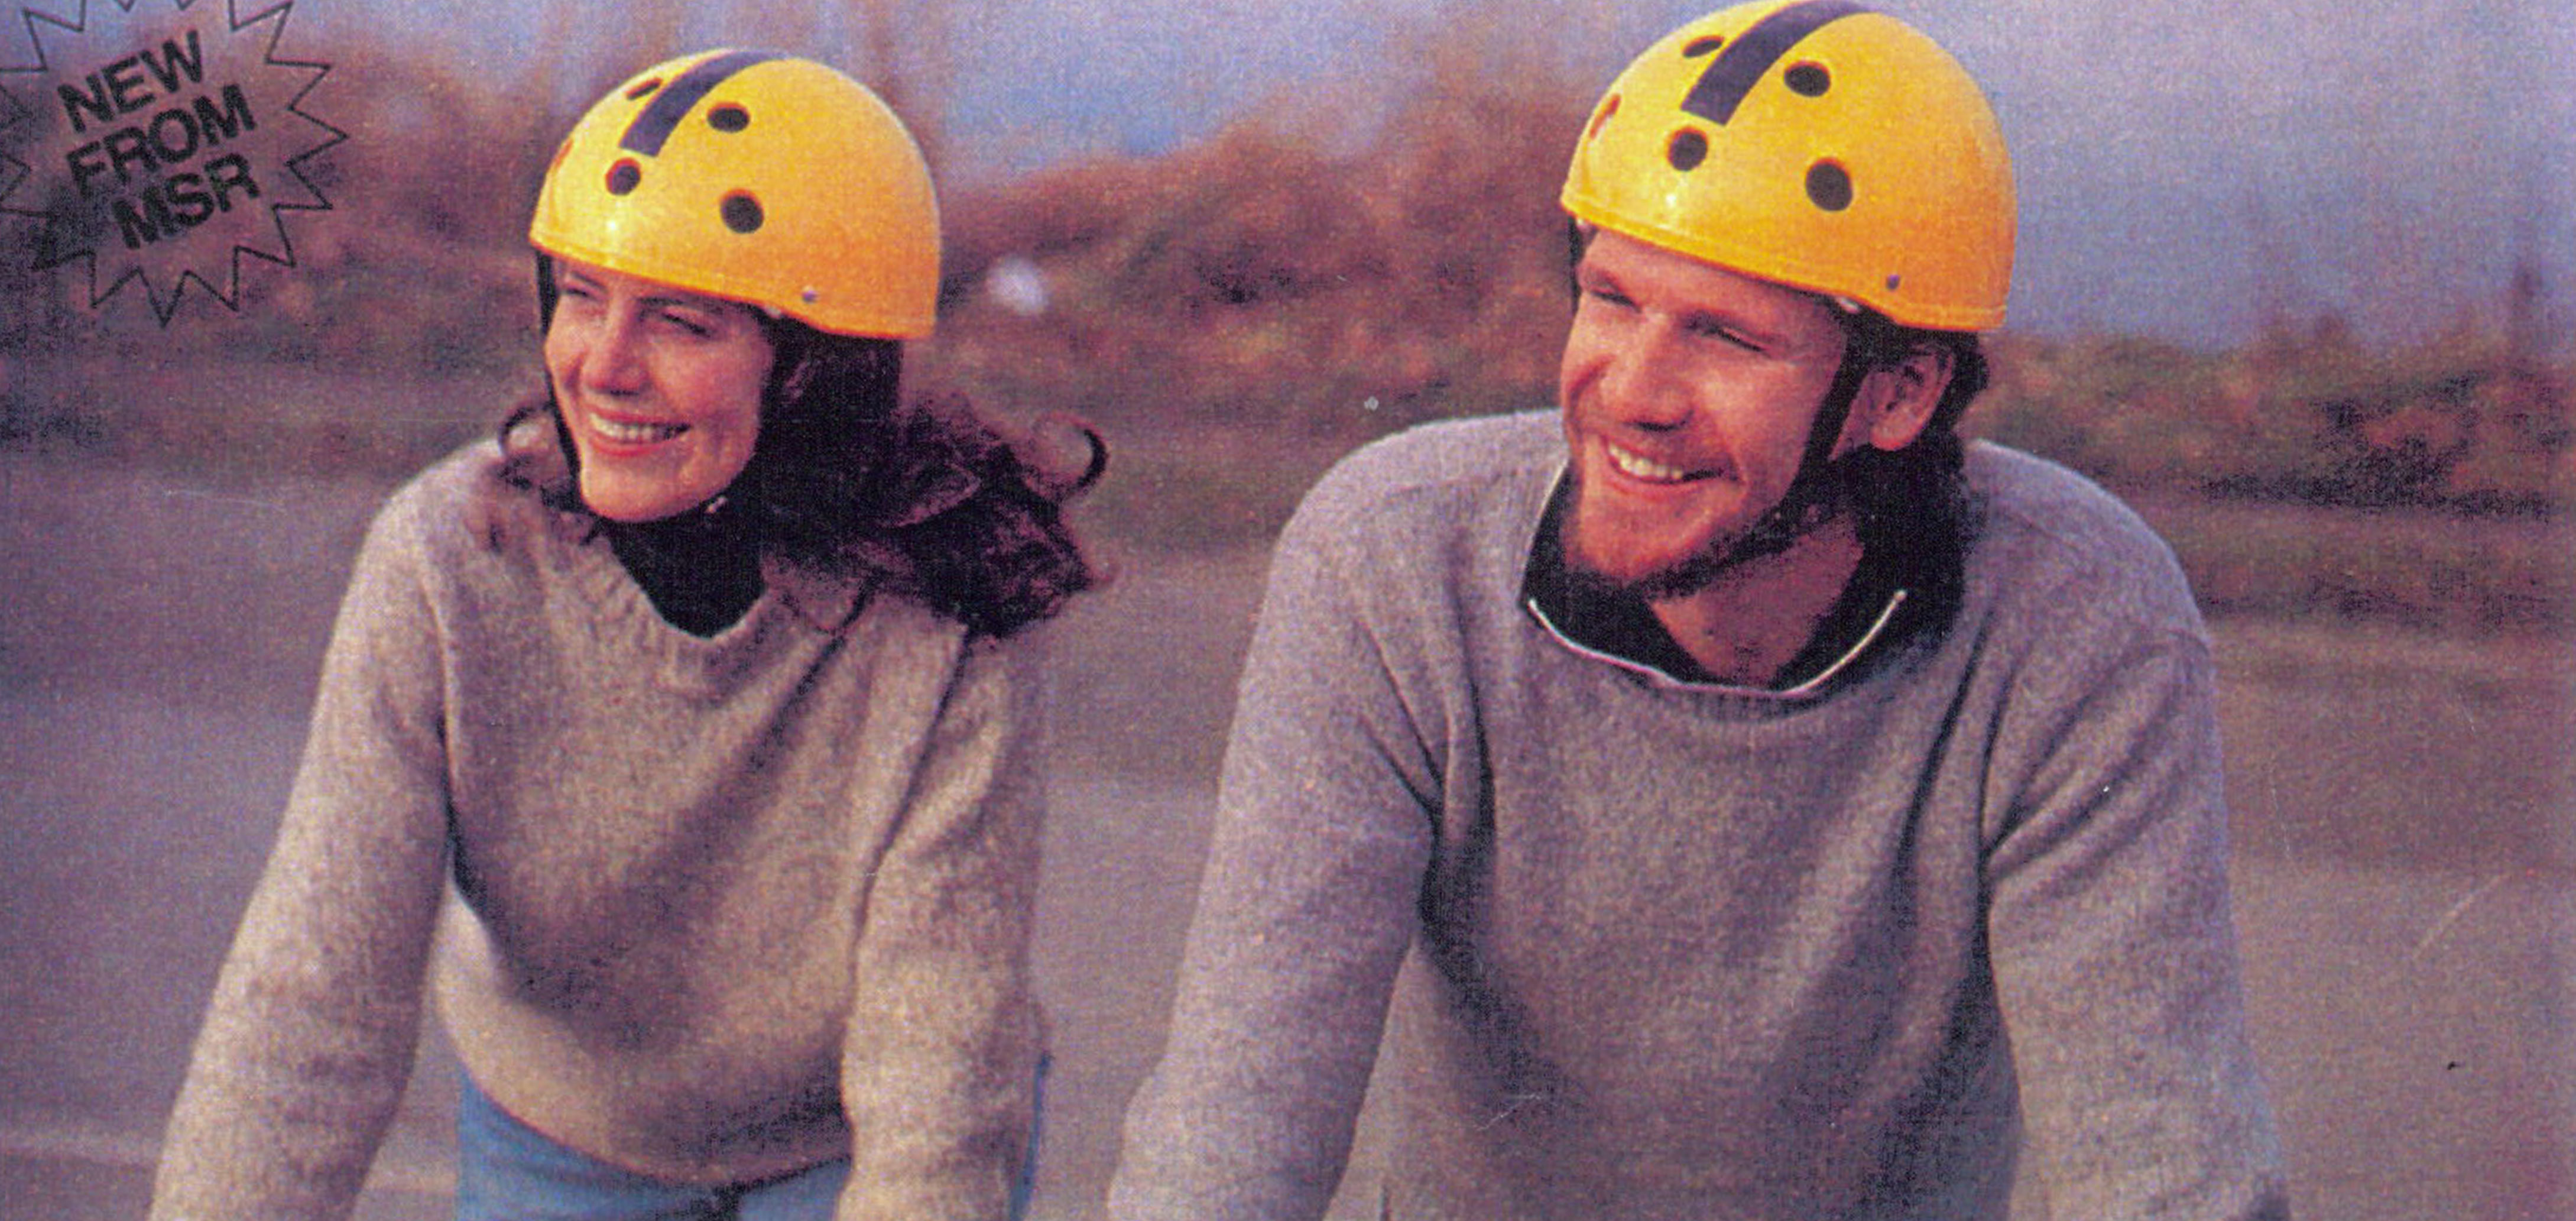 Bicyclists with msr helmets